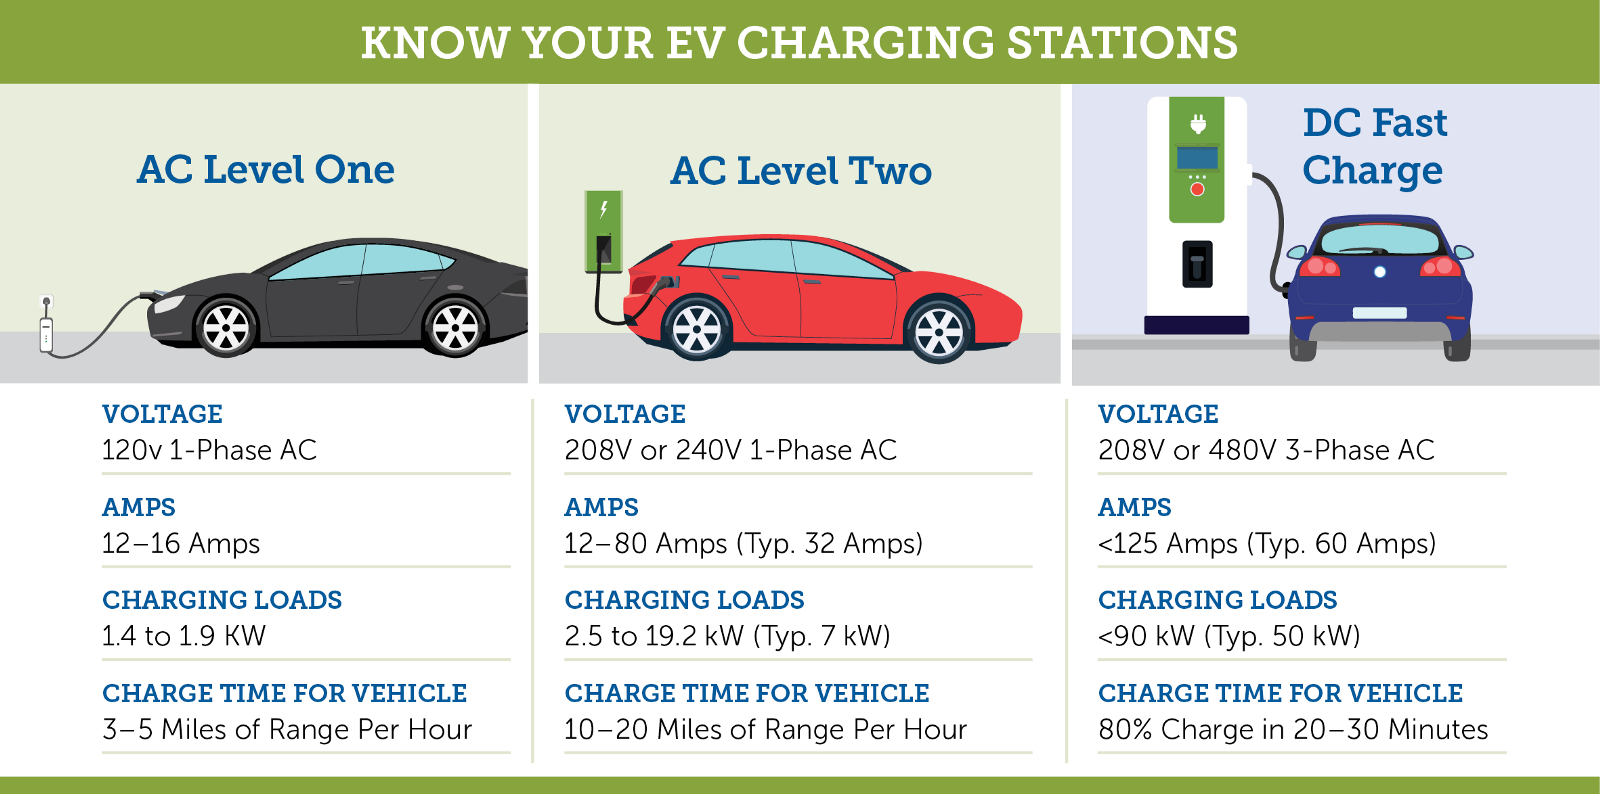 Electric Vehicle Service Equipment Evse Is A Term Used For All Ev Charging Solutions Are Further Clified According To The Rate Sd